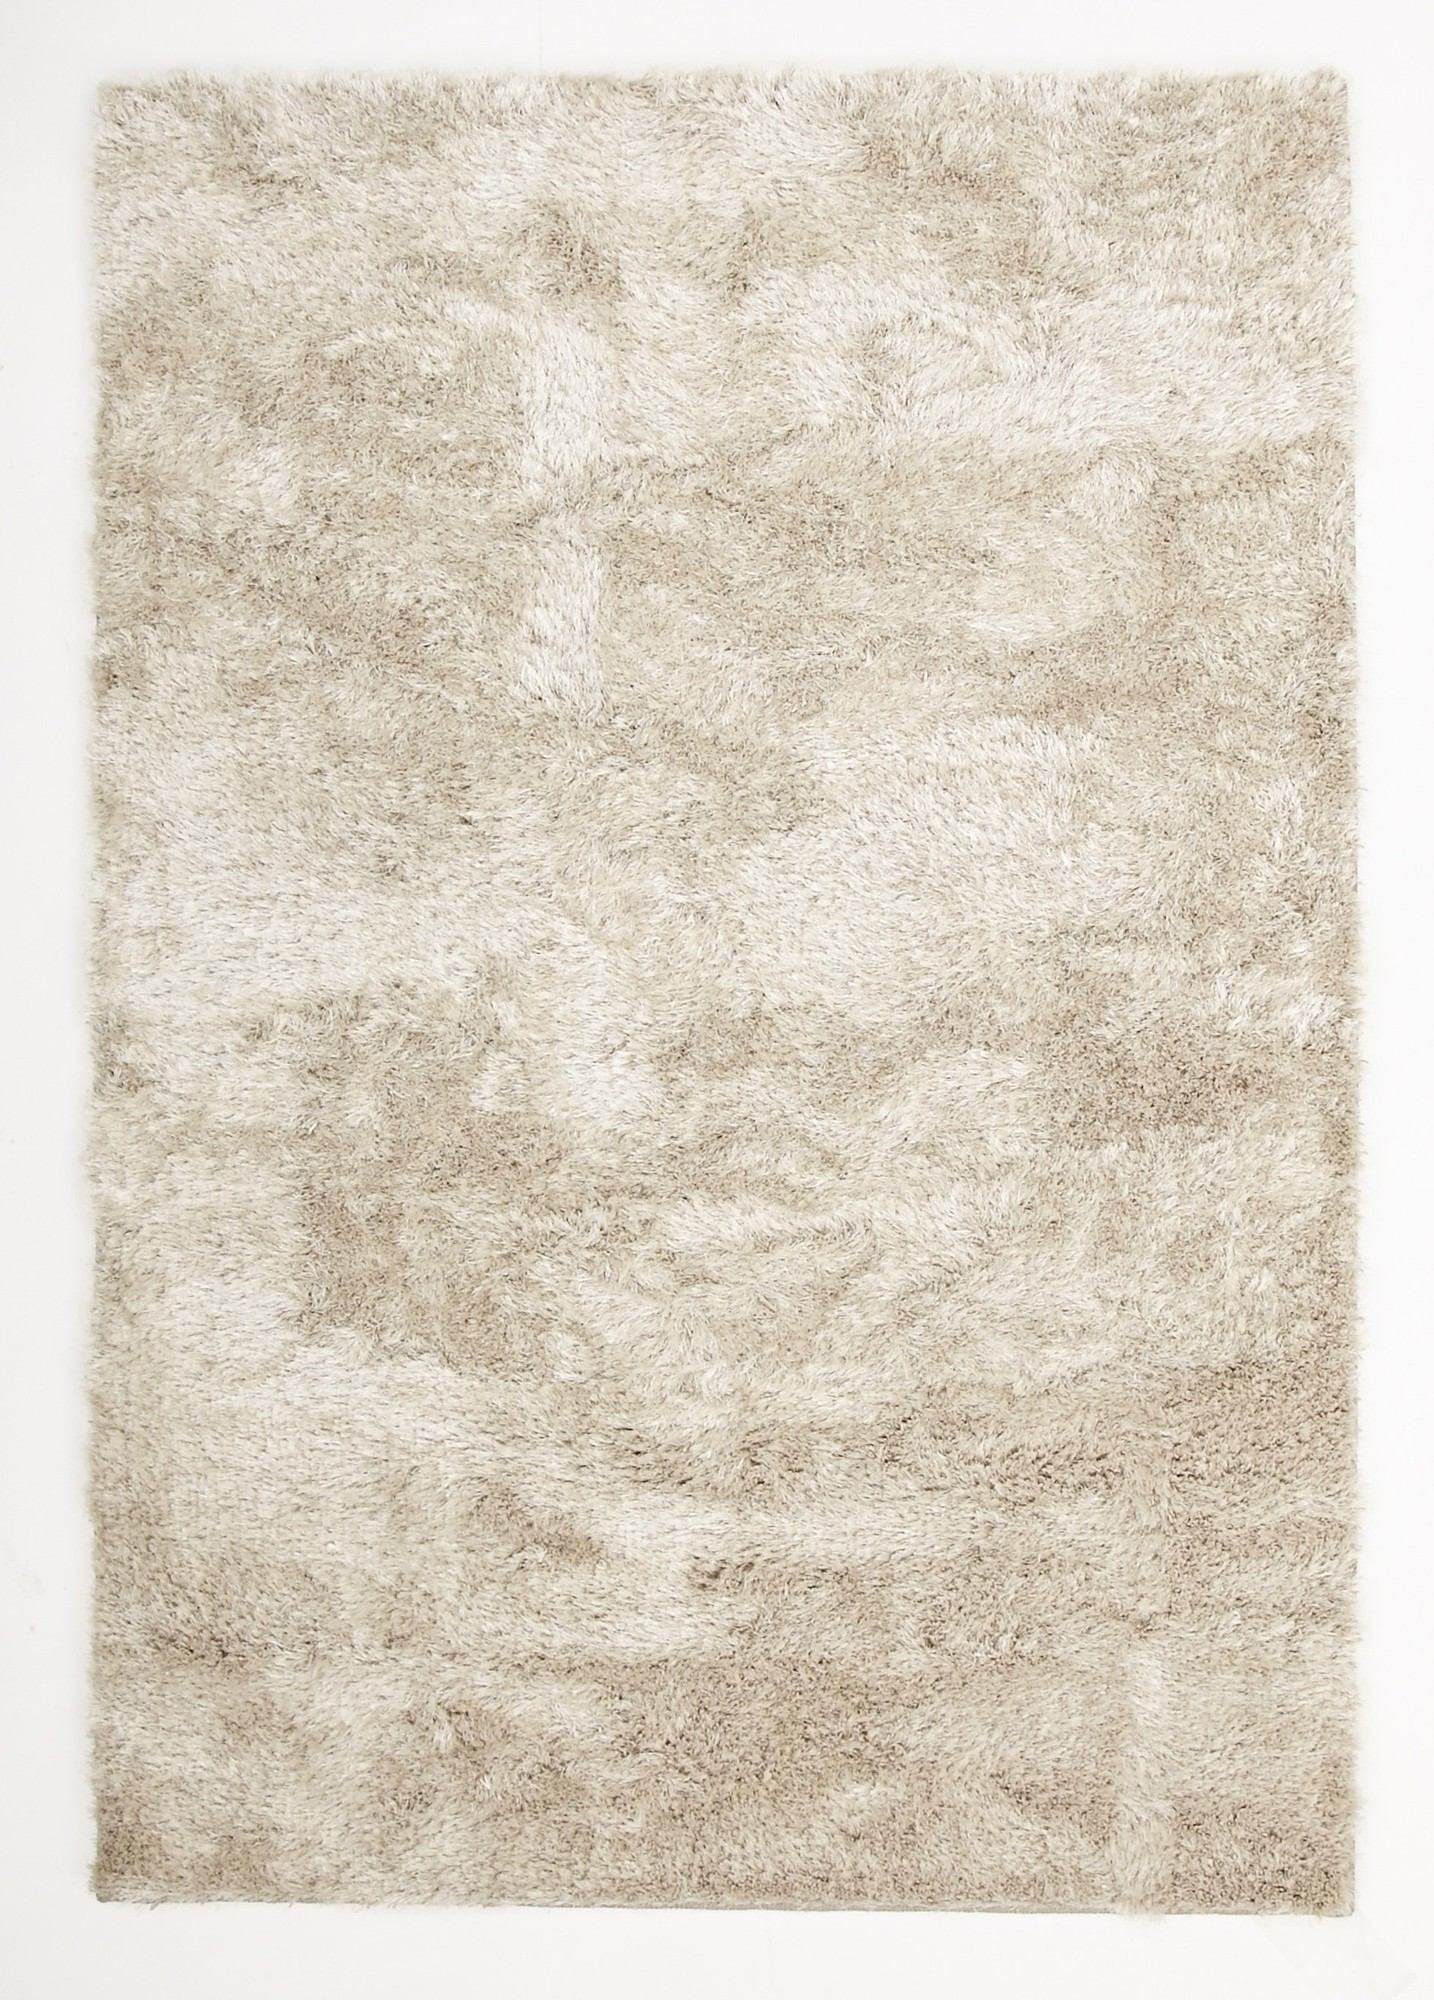 collection com light and safavieh moroccan shag ivory rug amazon home rugs grey highest interior